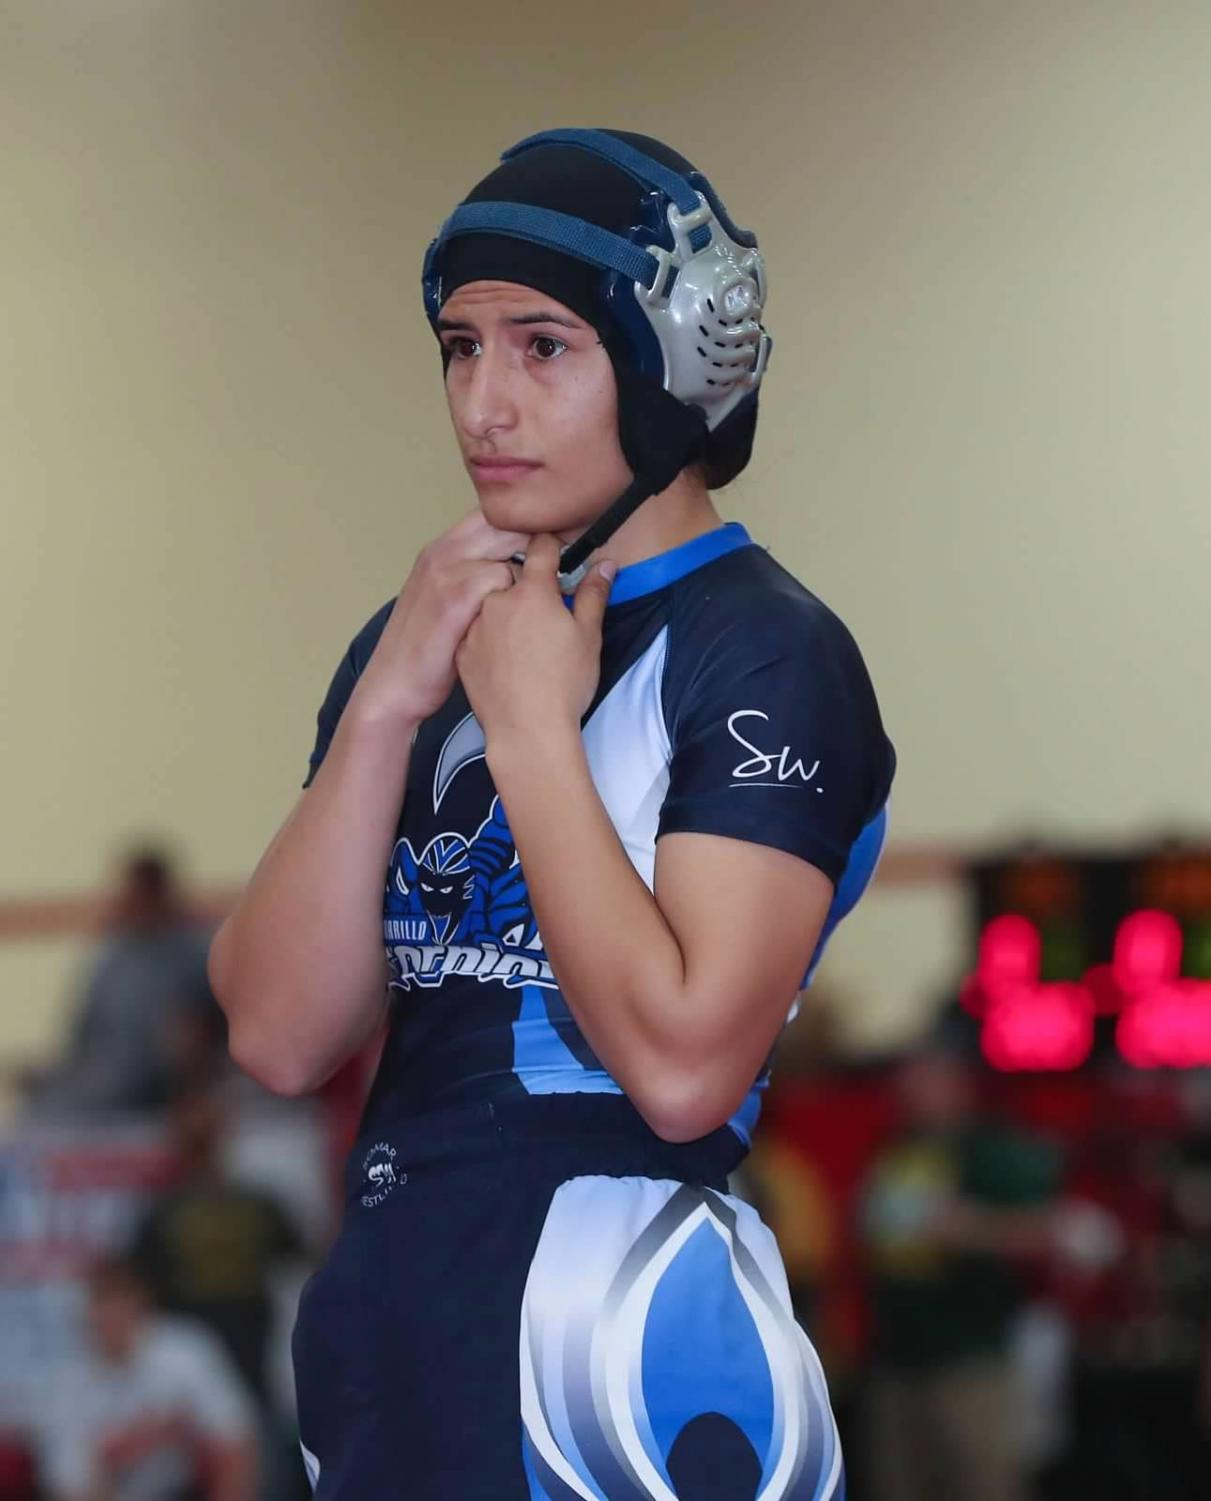 Yasmine Gonzalez looks into the ring before her match while wearing her wrestling gear. Photo by Gaby Jose